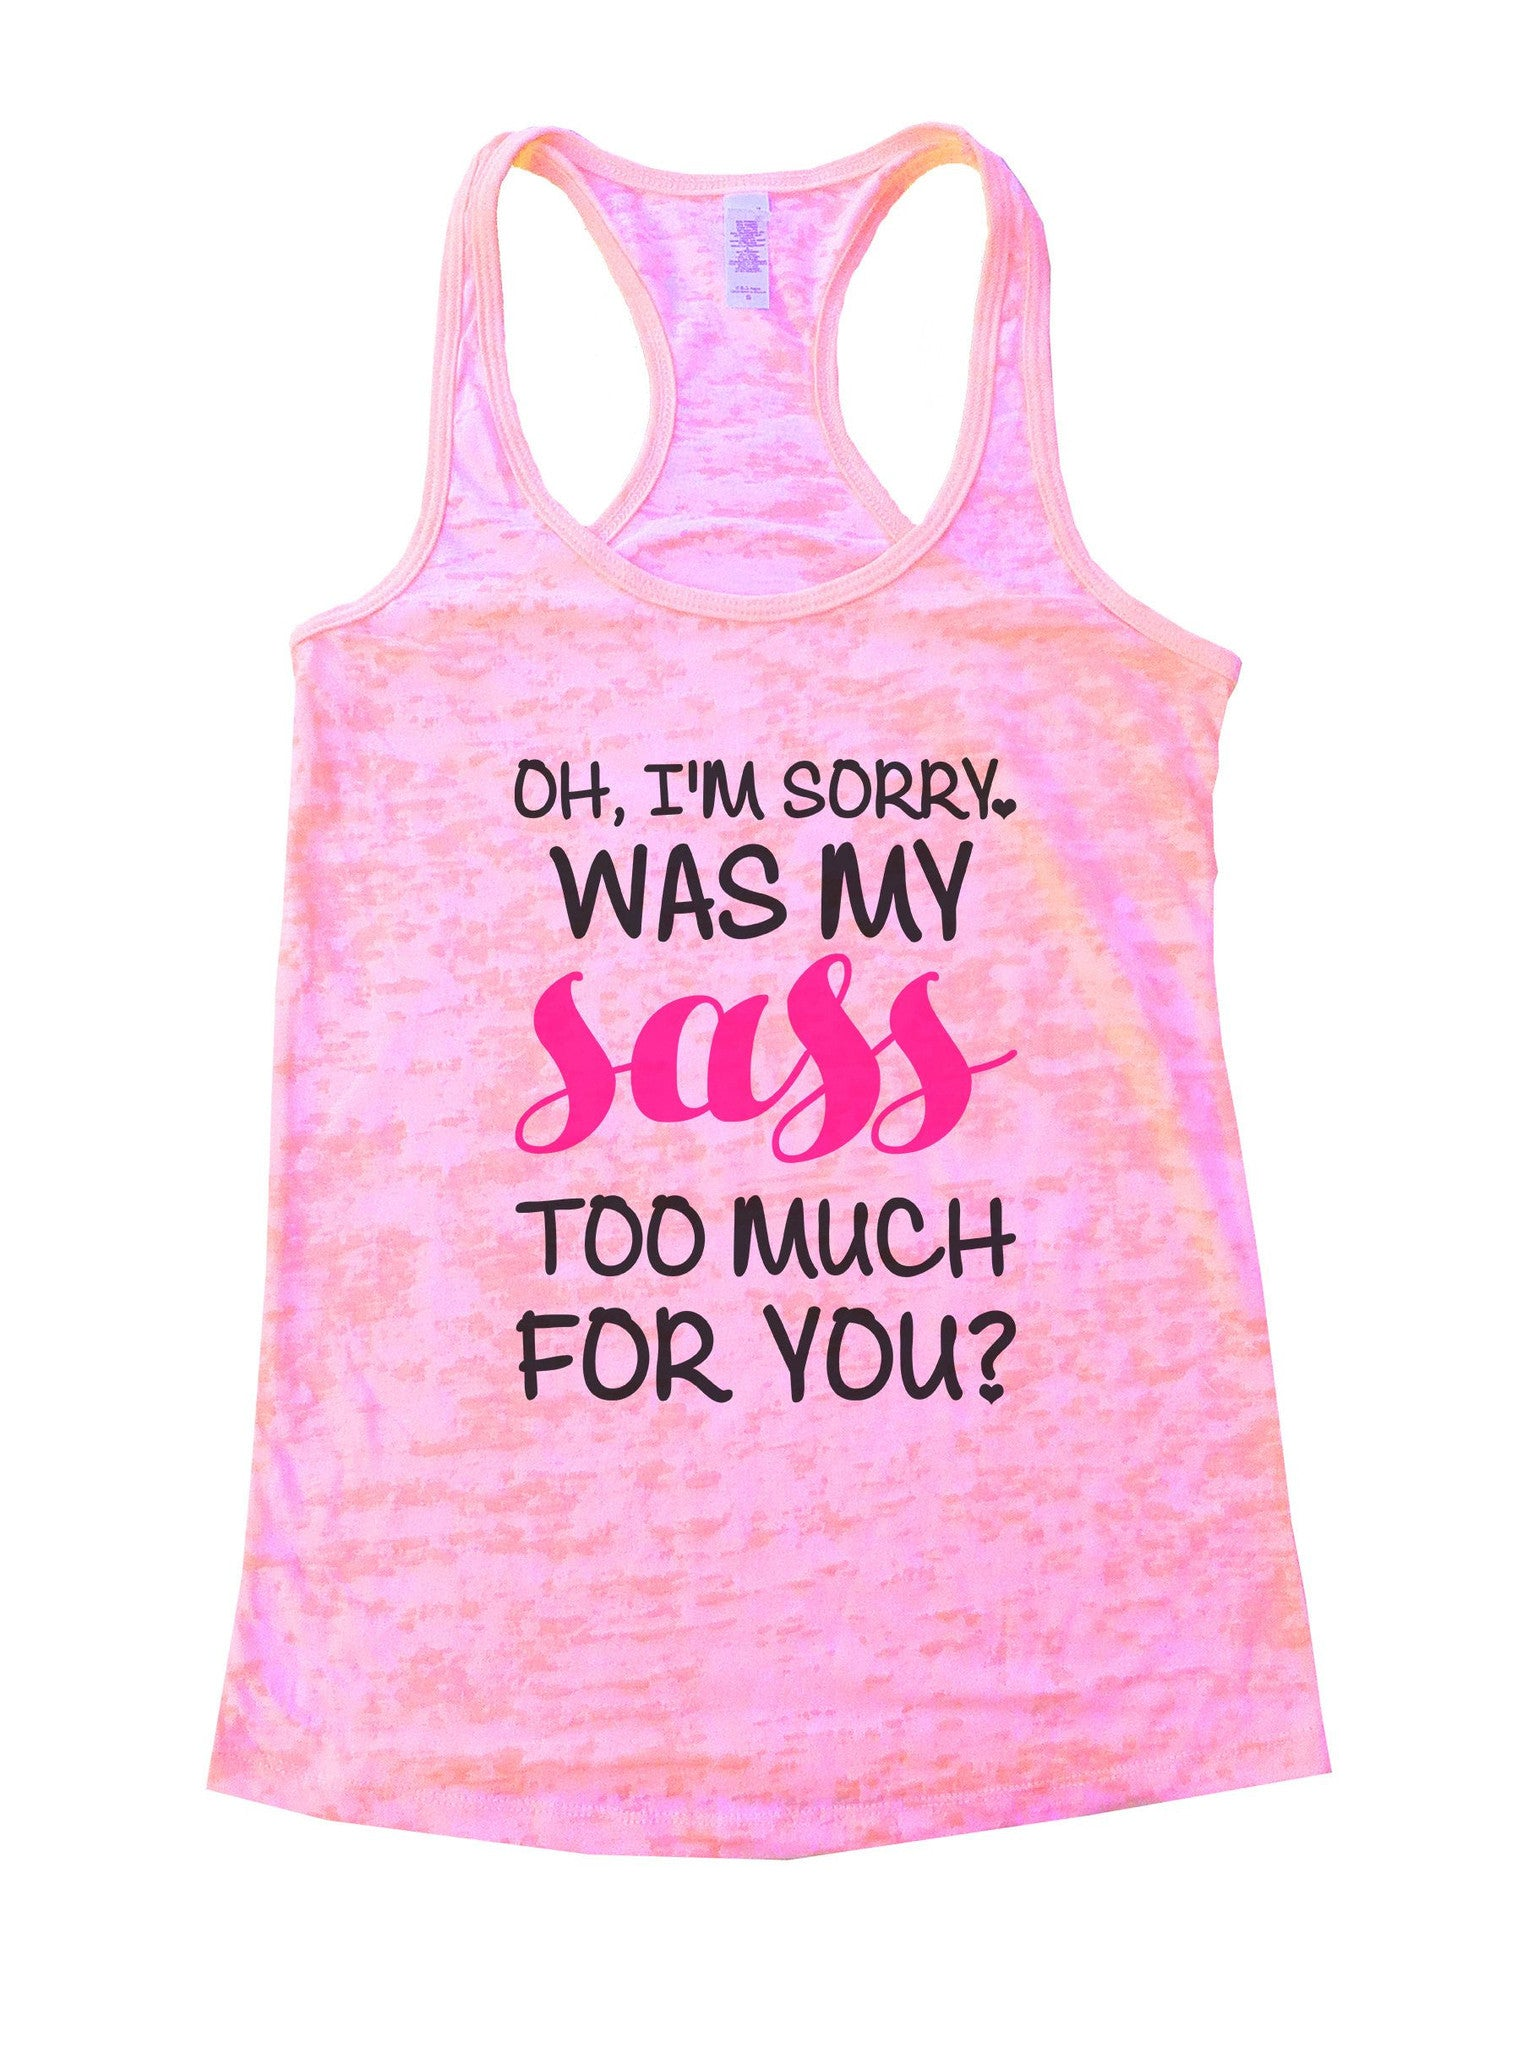 Oh, I'm Sorry, Was My Sass Too Much For You? Burnout Tank Top By BurnoutTankTops.com - 1117 - Funny Shirts Tank Tops Burnouts and Triblends  - 4